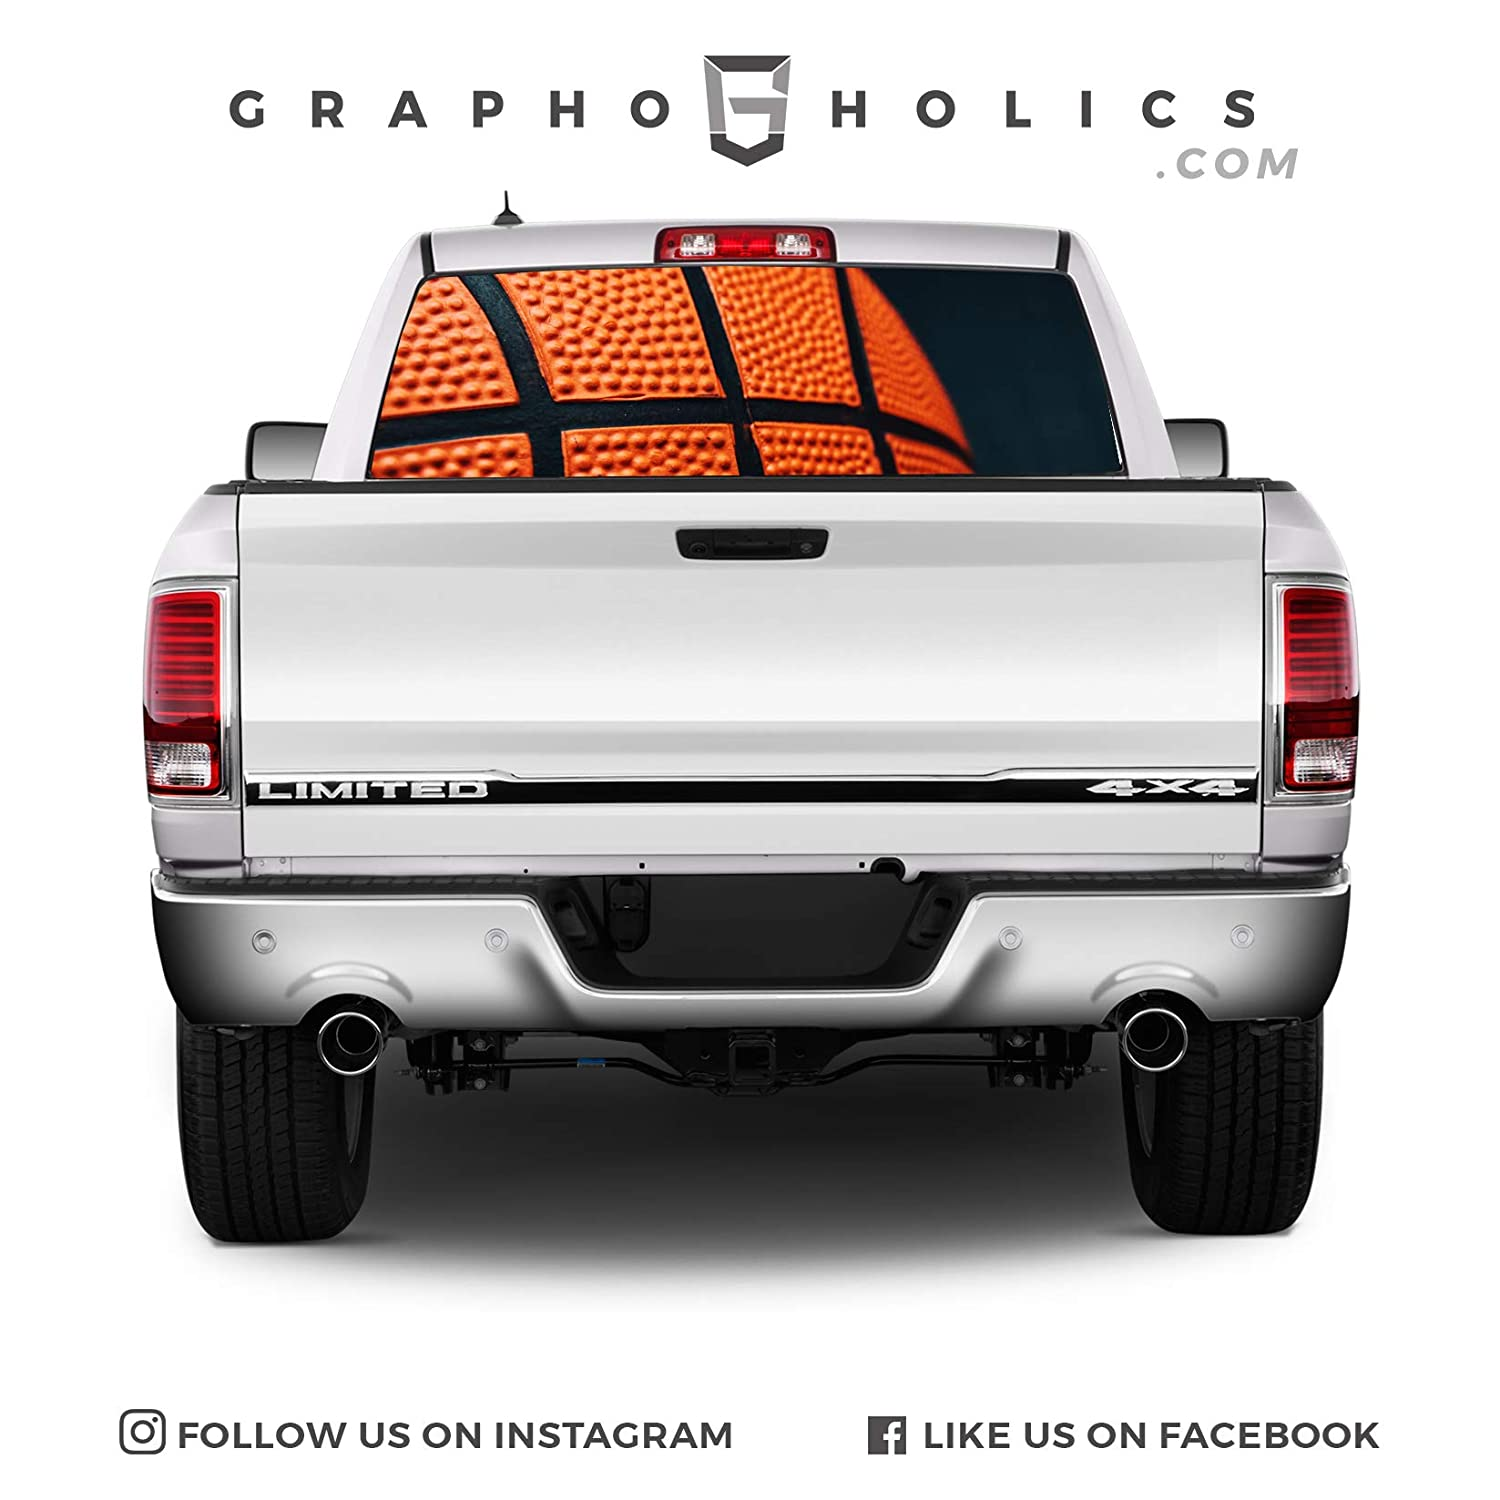 Basketball Themed Wrap Pick-Up Truck Perforated Rear Window Wrap